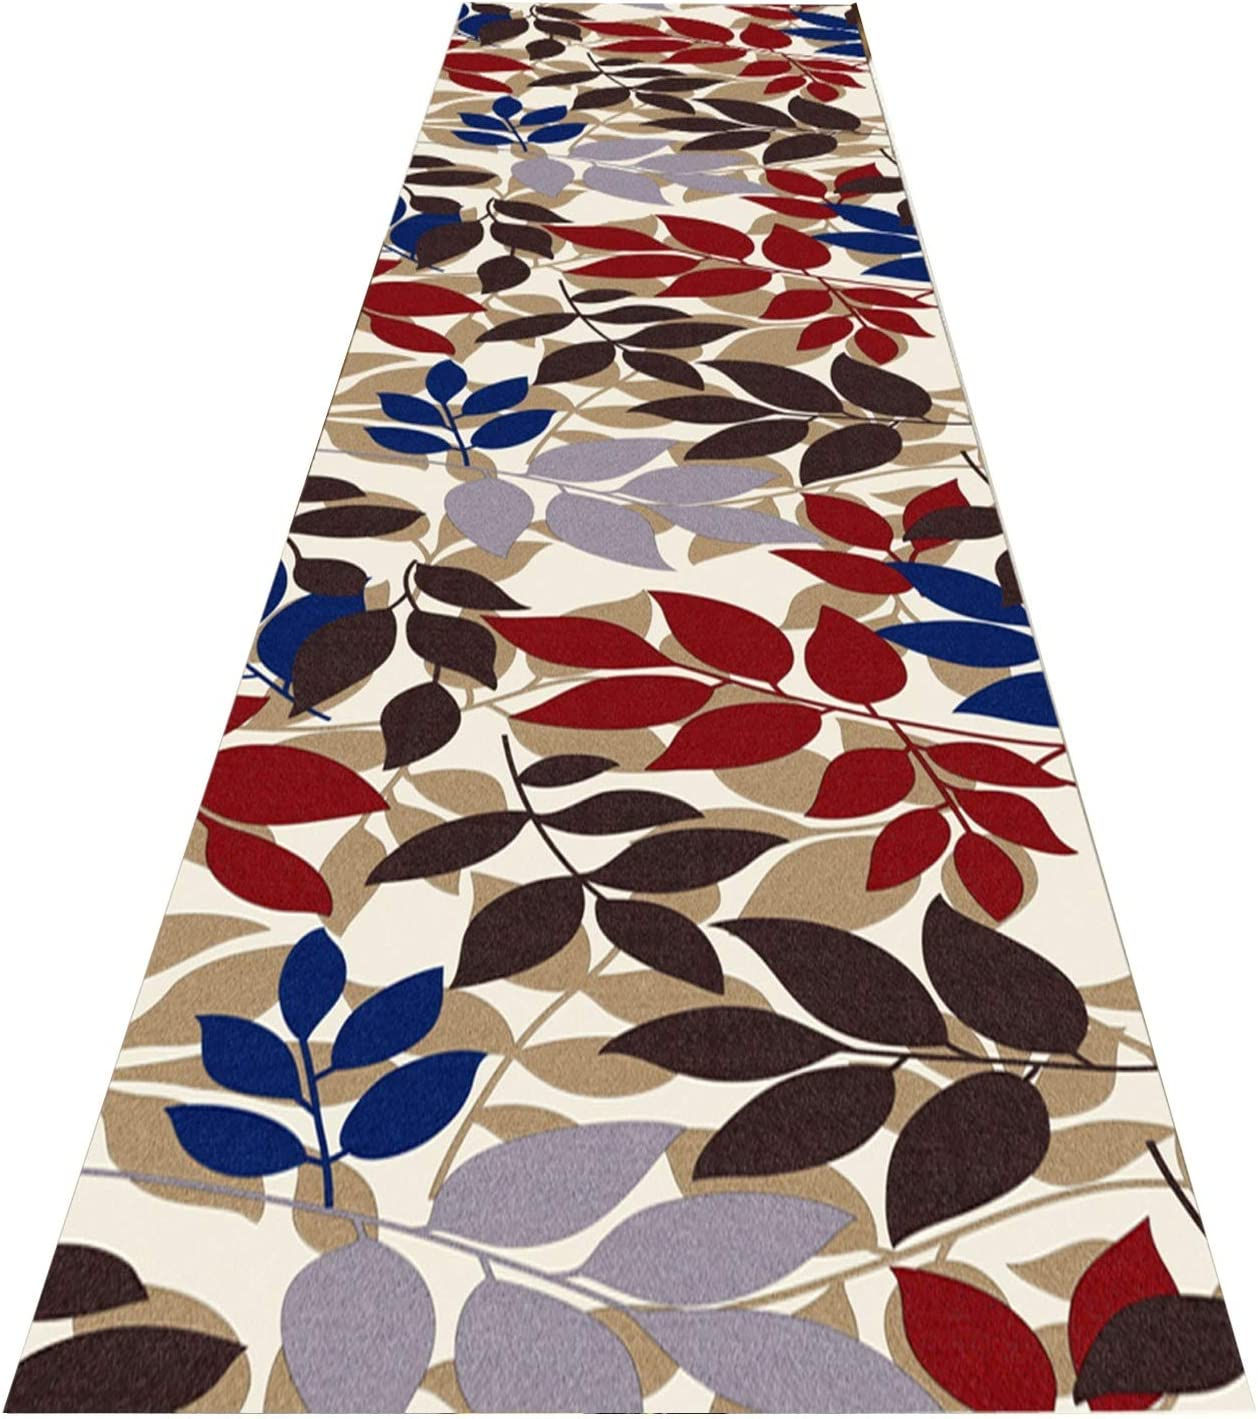 WCBING Corridor Carpets Modern Hallways Non-Slip Sales of SALE items from new works Ma Runner Max 81% OFF Rugs